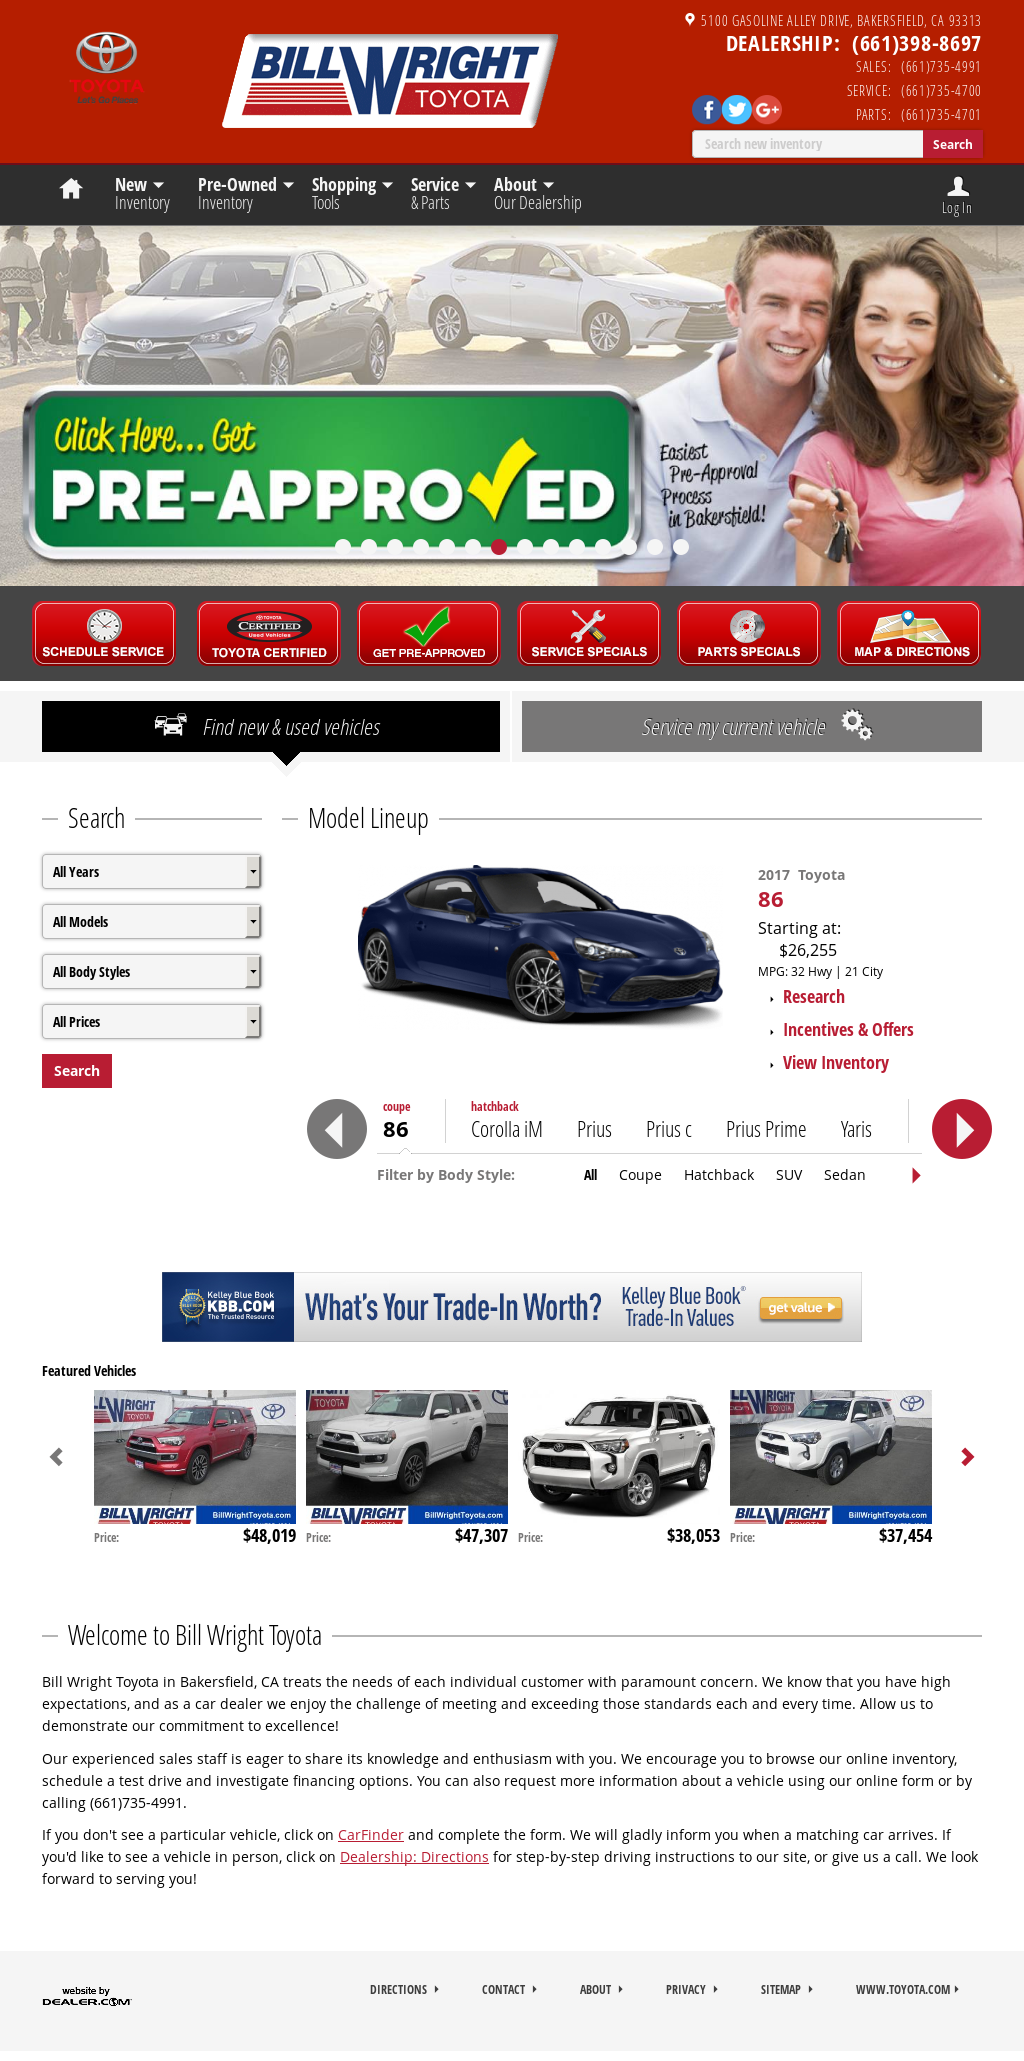 Bill Wright Toyota Competitors, Revenue And Employees   Owler Company  Profile